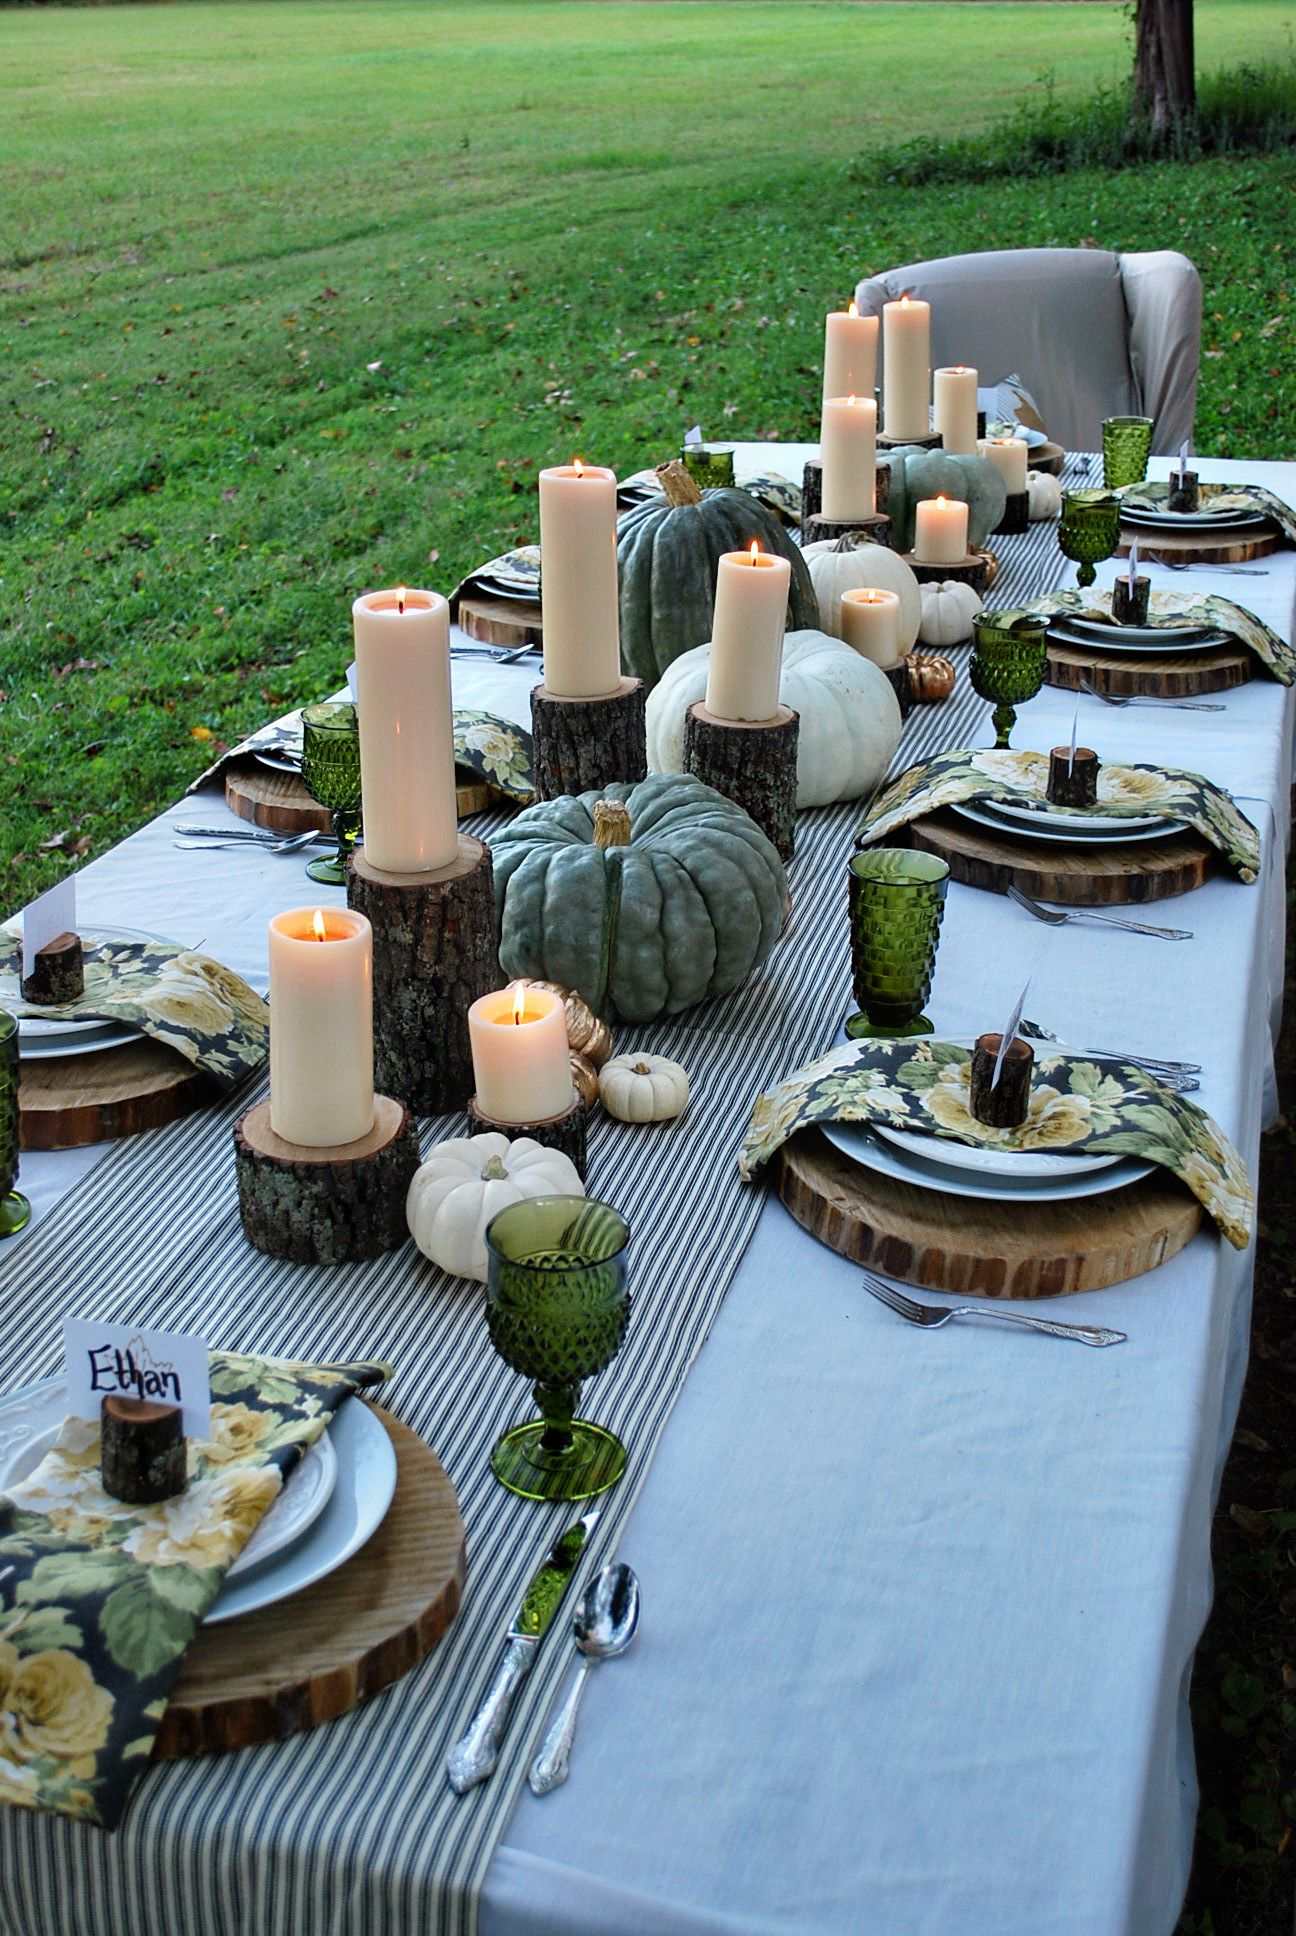 Charmant Dark Green Glass, Wood Plank Chargers, White Candles On Wood For A Breath  Taking Table Setting.